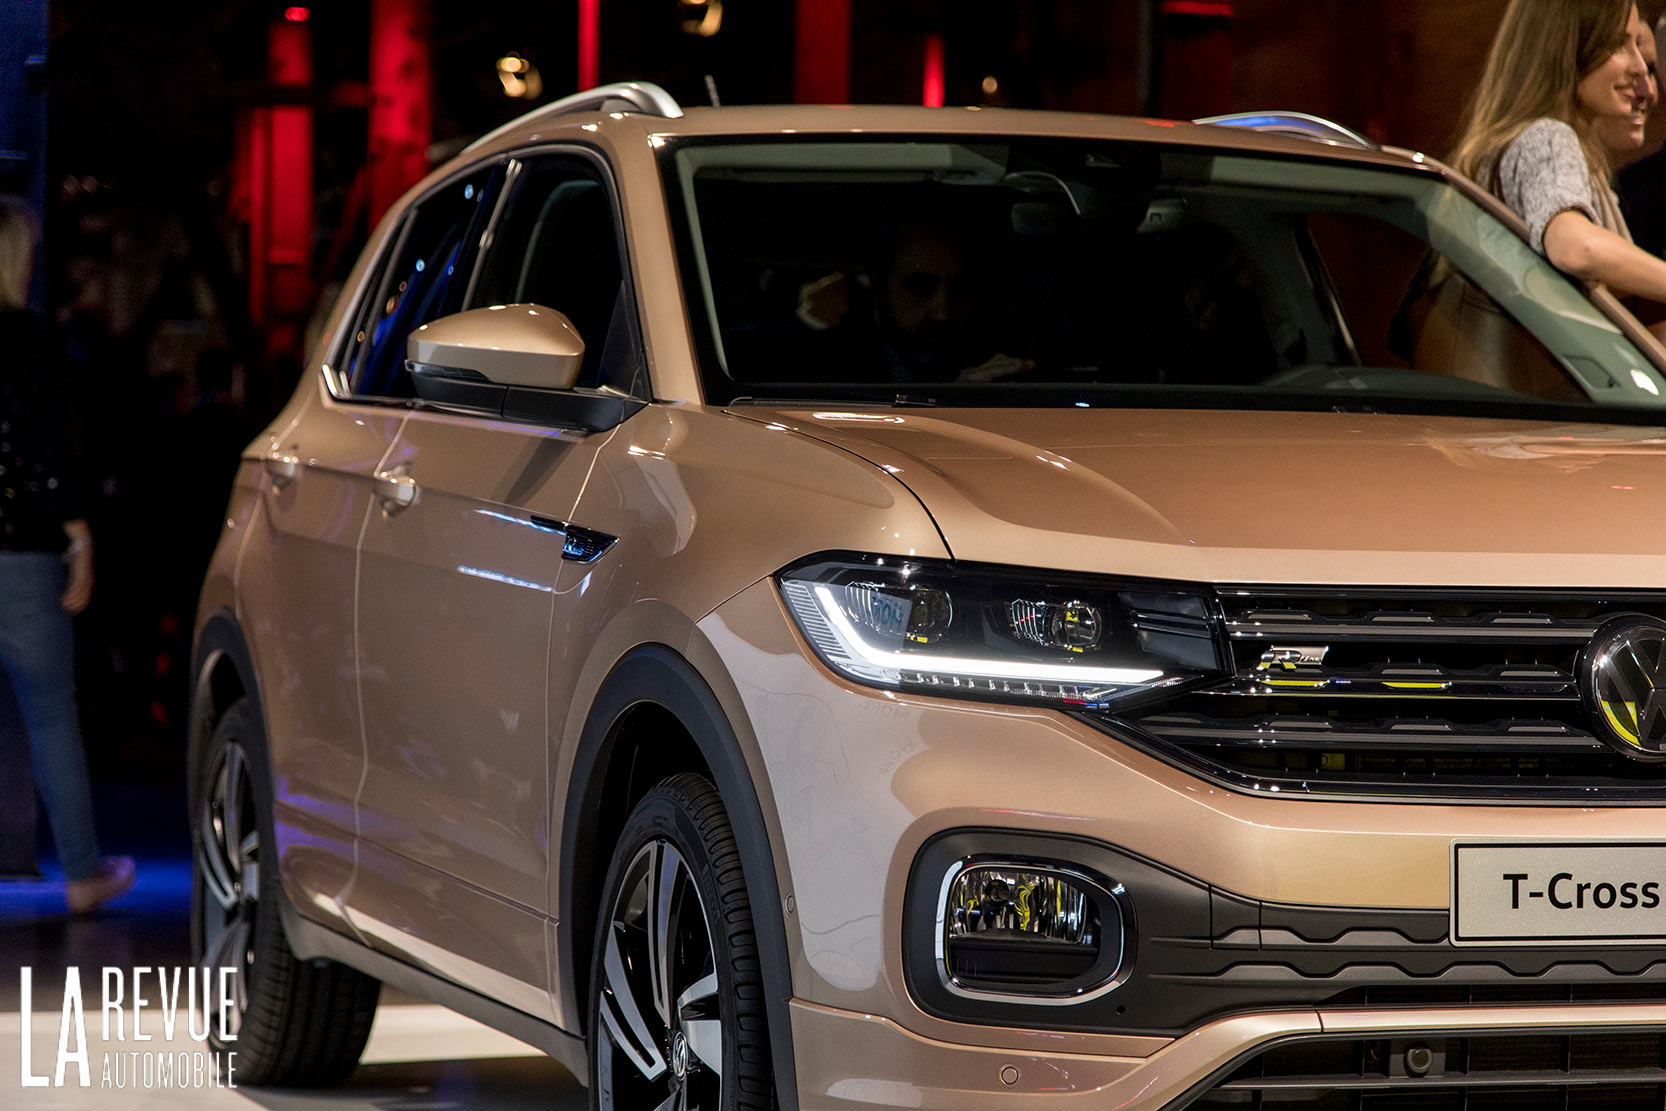 Exterieur_Volkswagen-T-Cross-Reveal_1